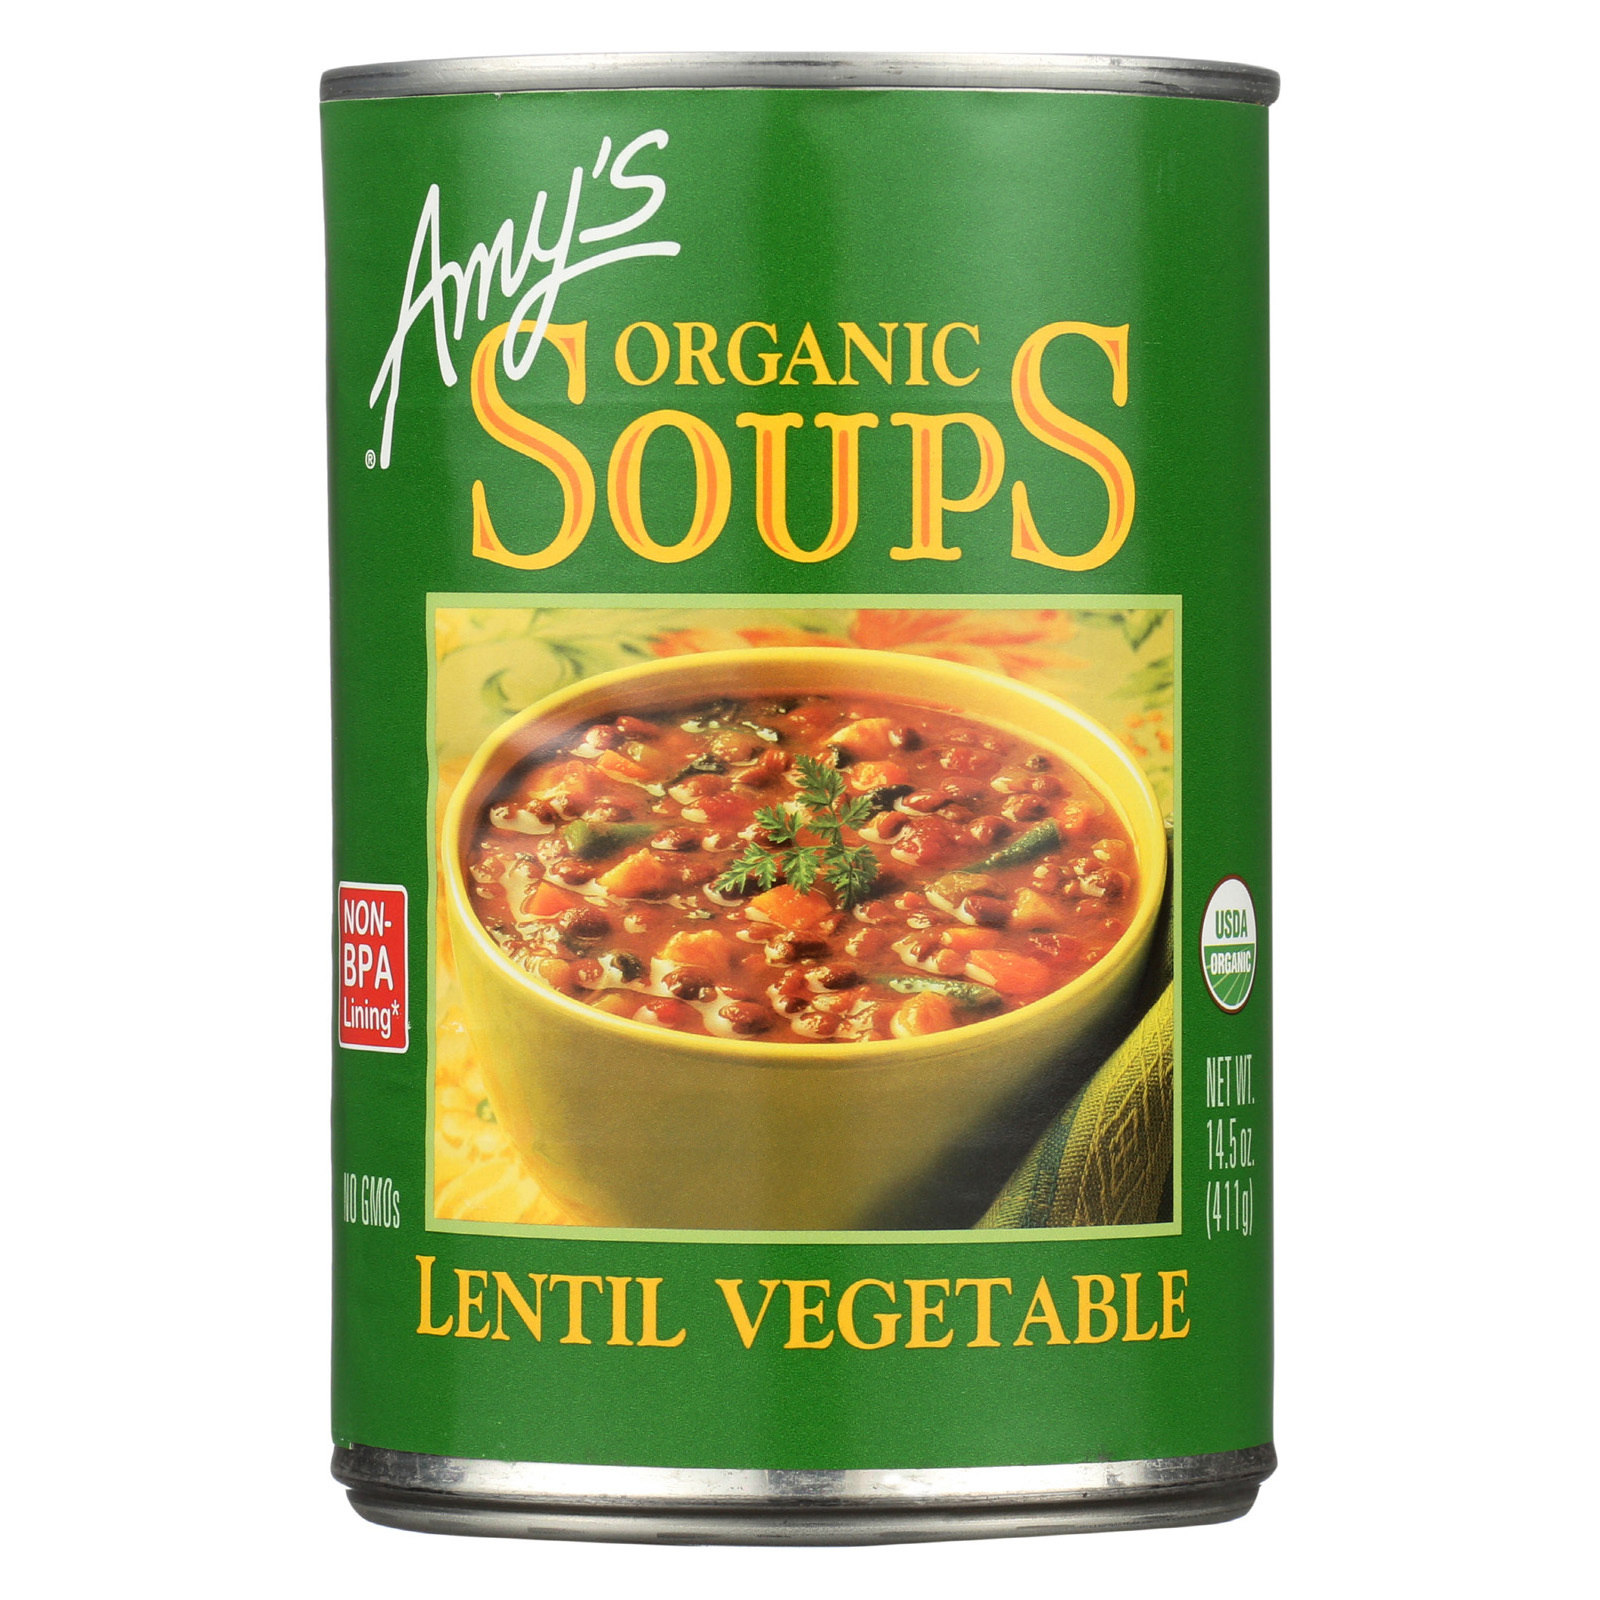 Amy's Organic Lentil Vegetable Soup - Case of 12 - 14.5 oz